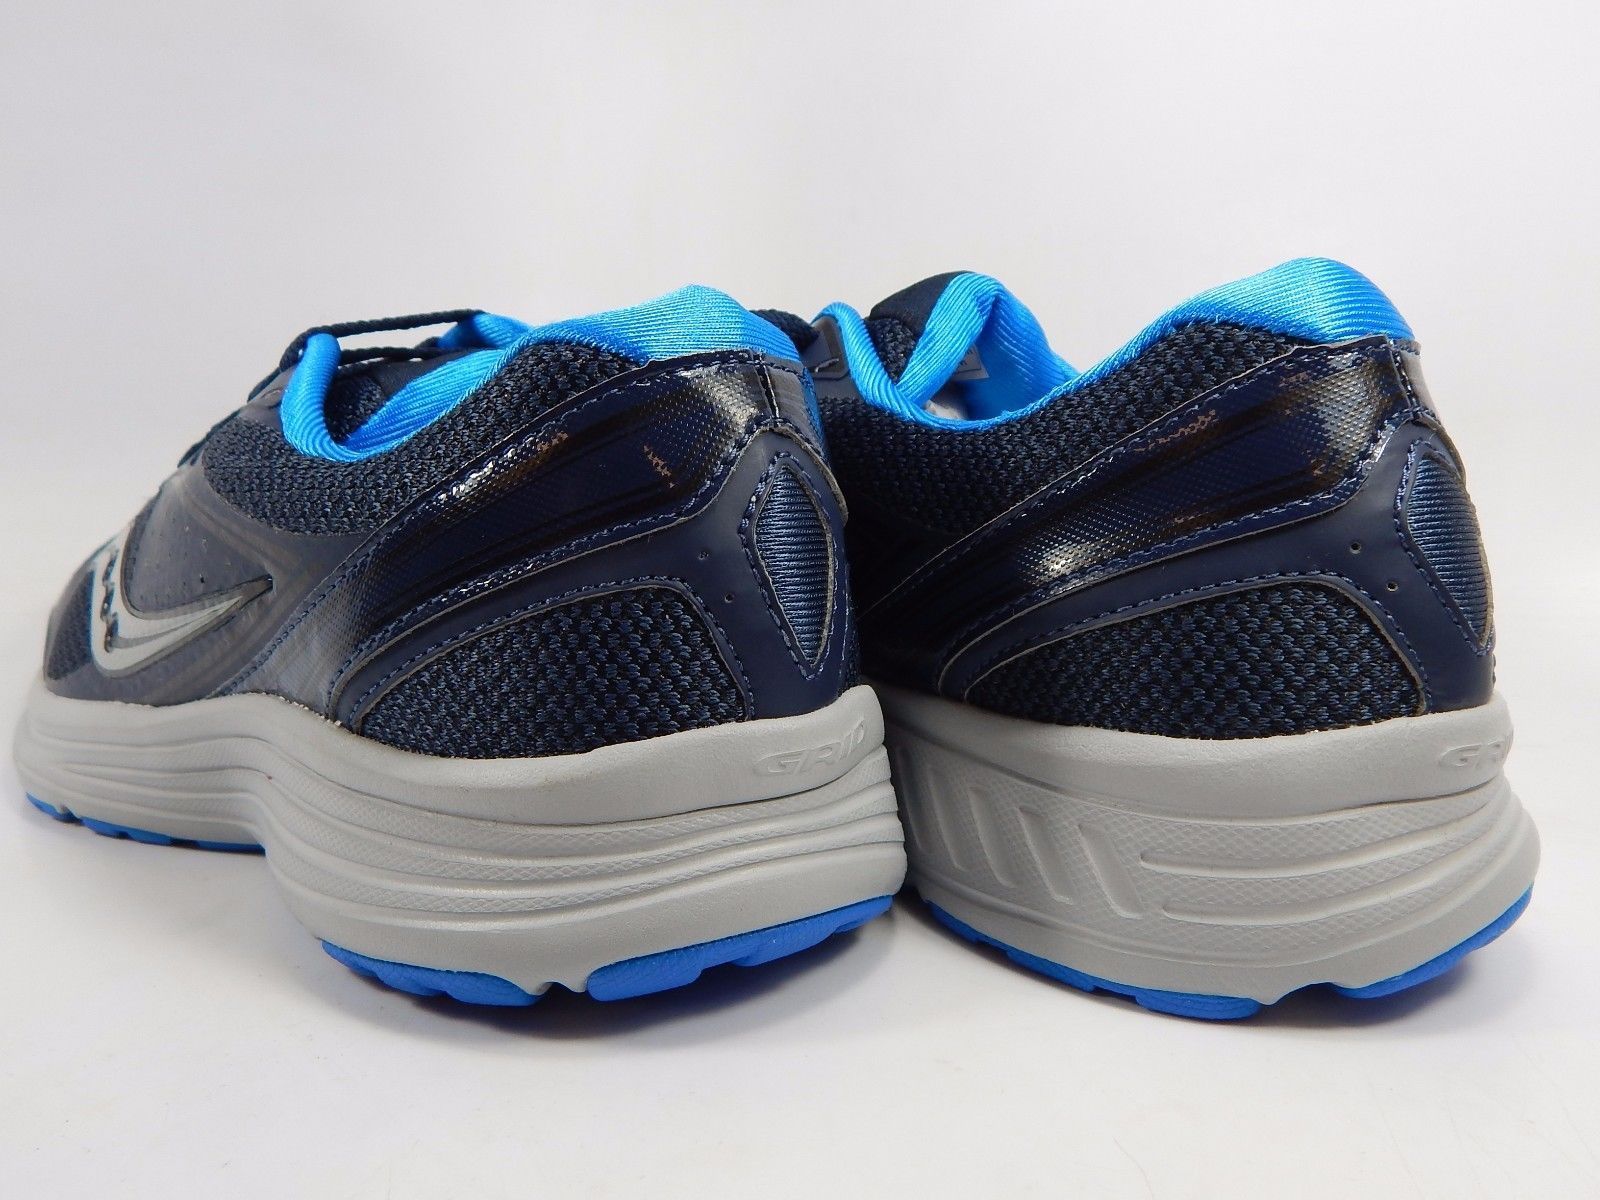 Saucony Grid Seeker Men's Running Shoes Size US 9 M (D) EU 42.5 Blue S25302-4